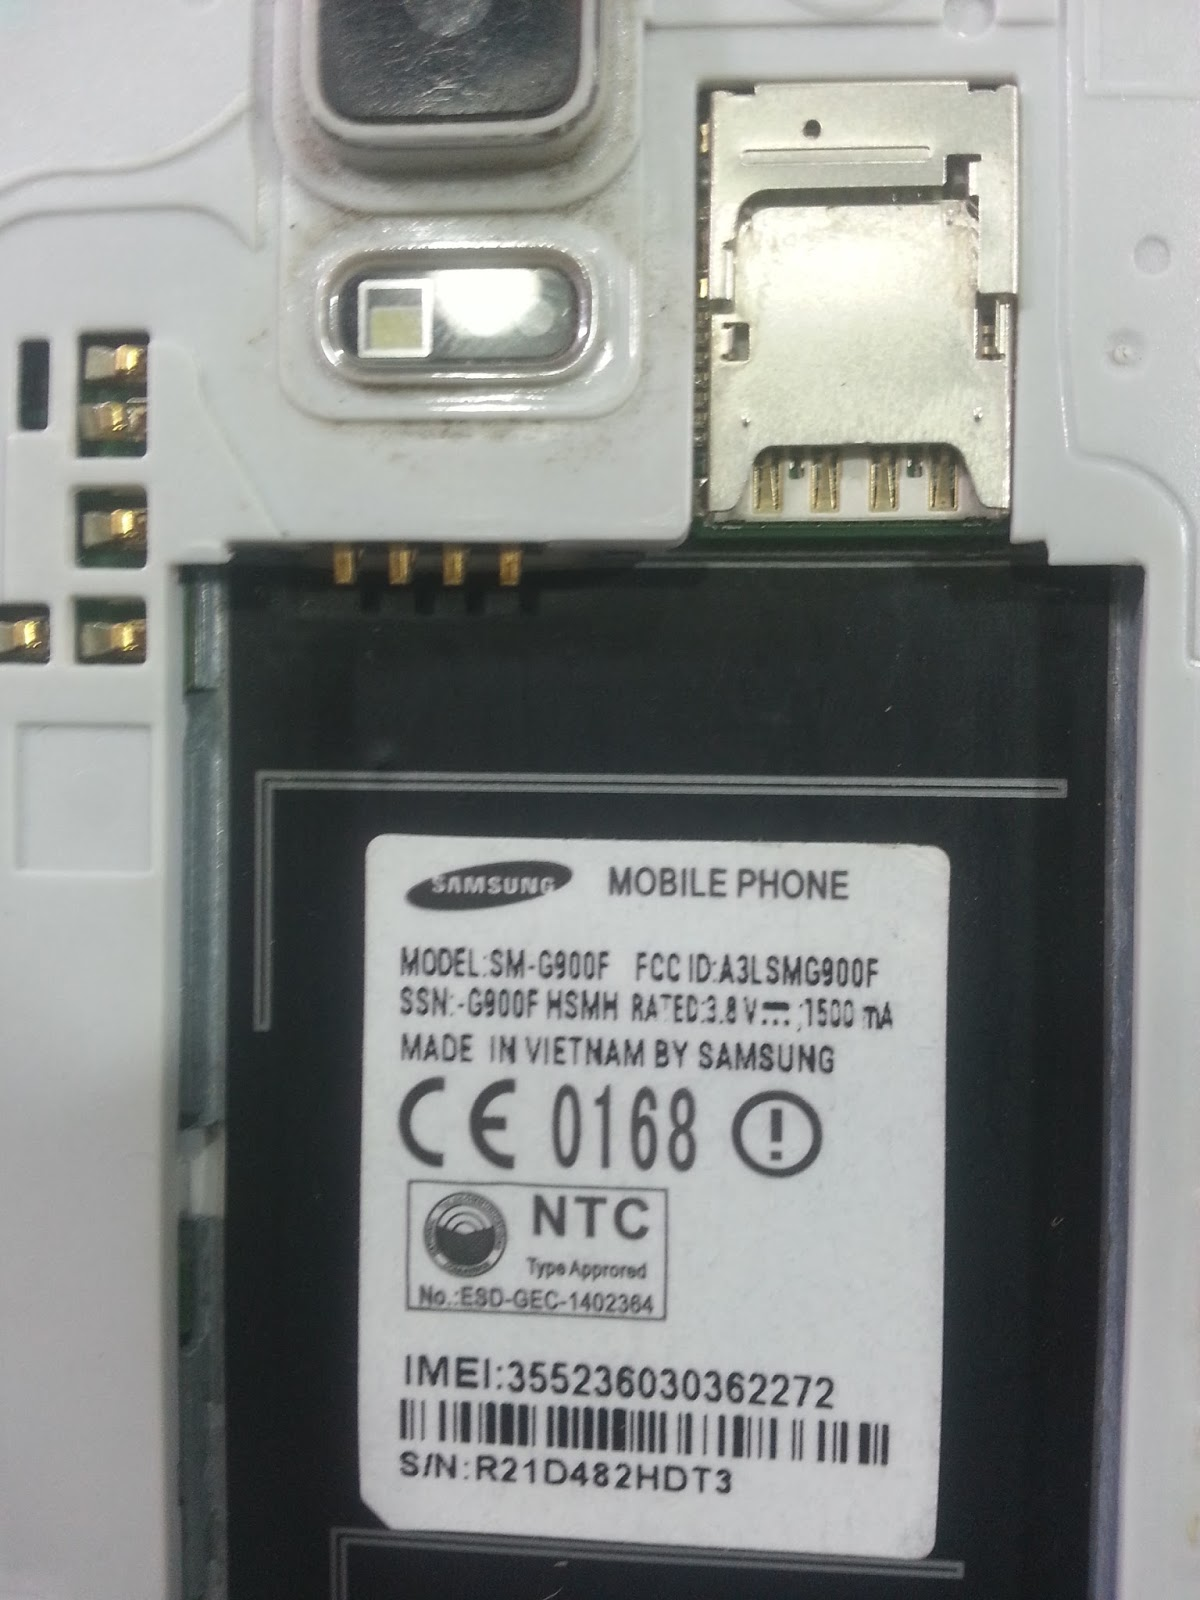 MD YOUSUF MOBILE SOLUTION: SAMSUNG COPY S5 G900F FLASH FILE